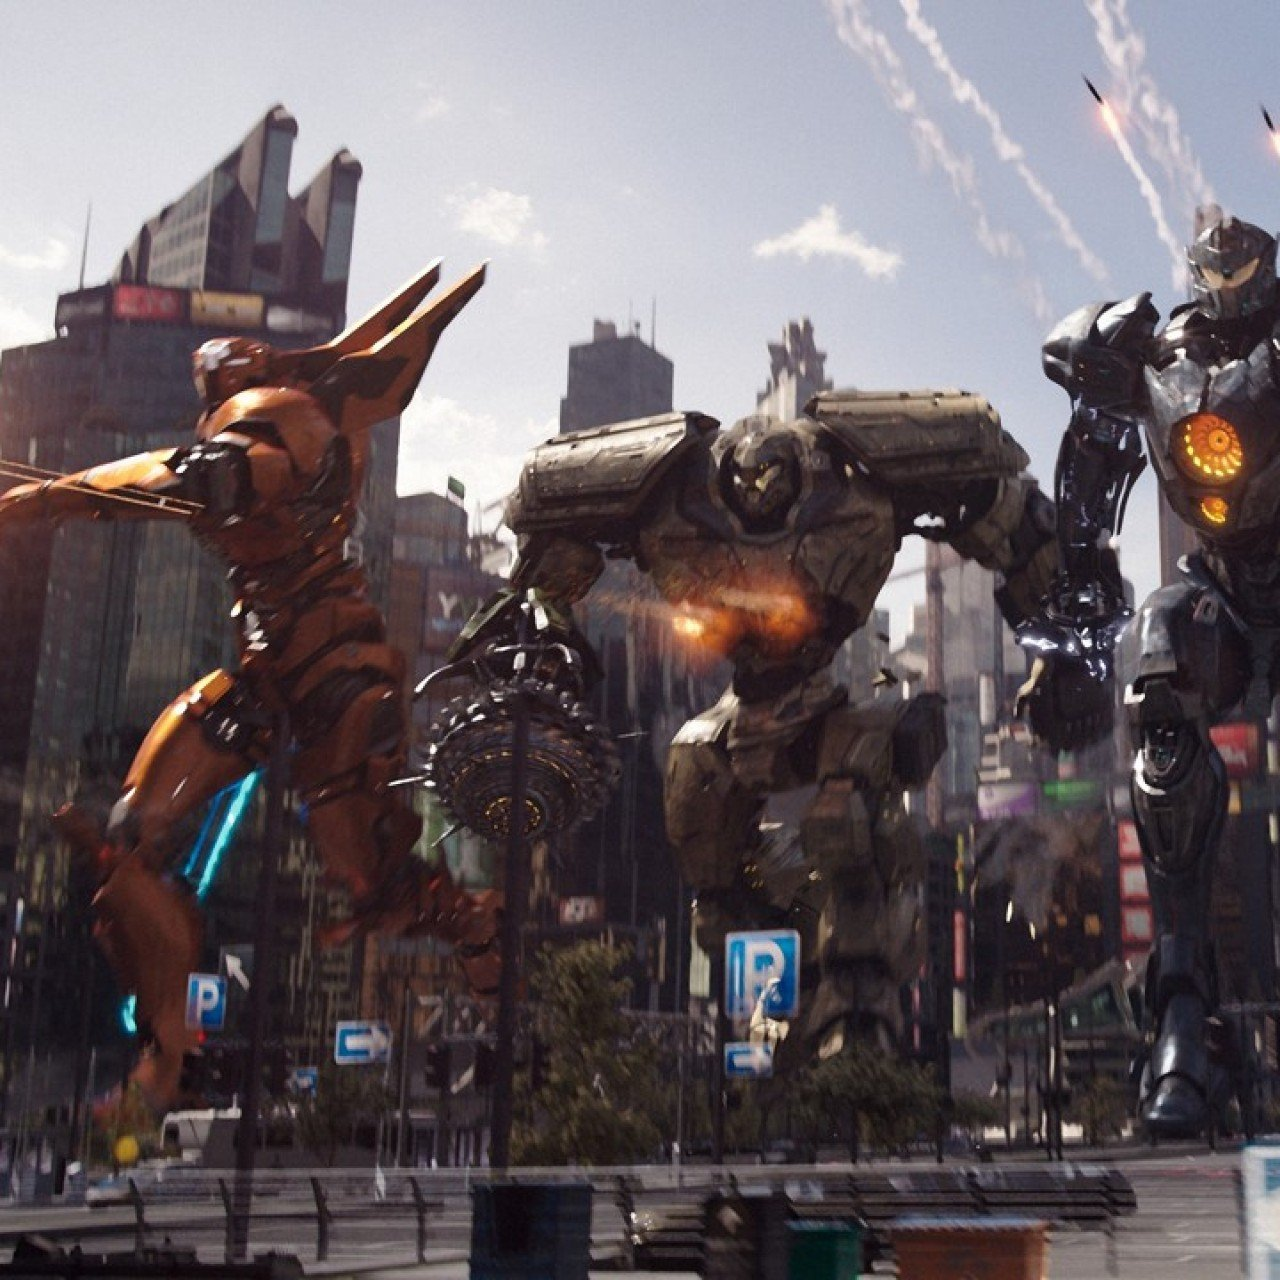 Pacific Rim: Uprising film review – John Boyega kills it as